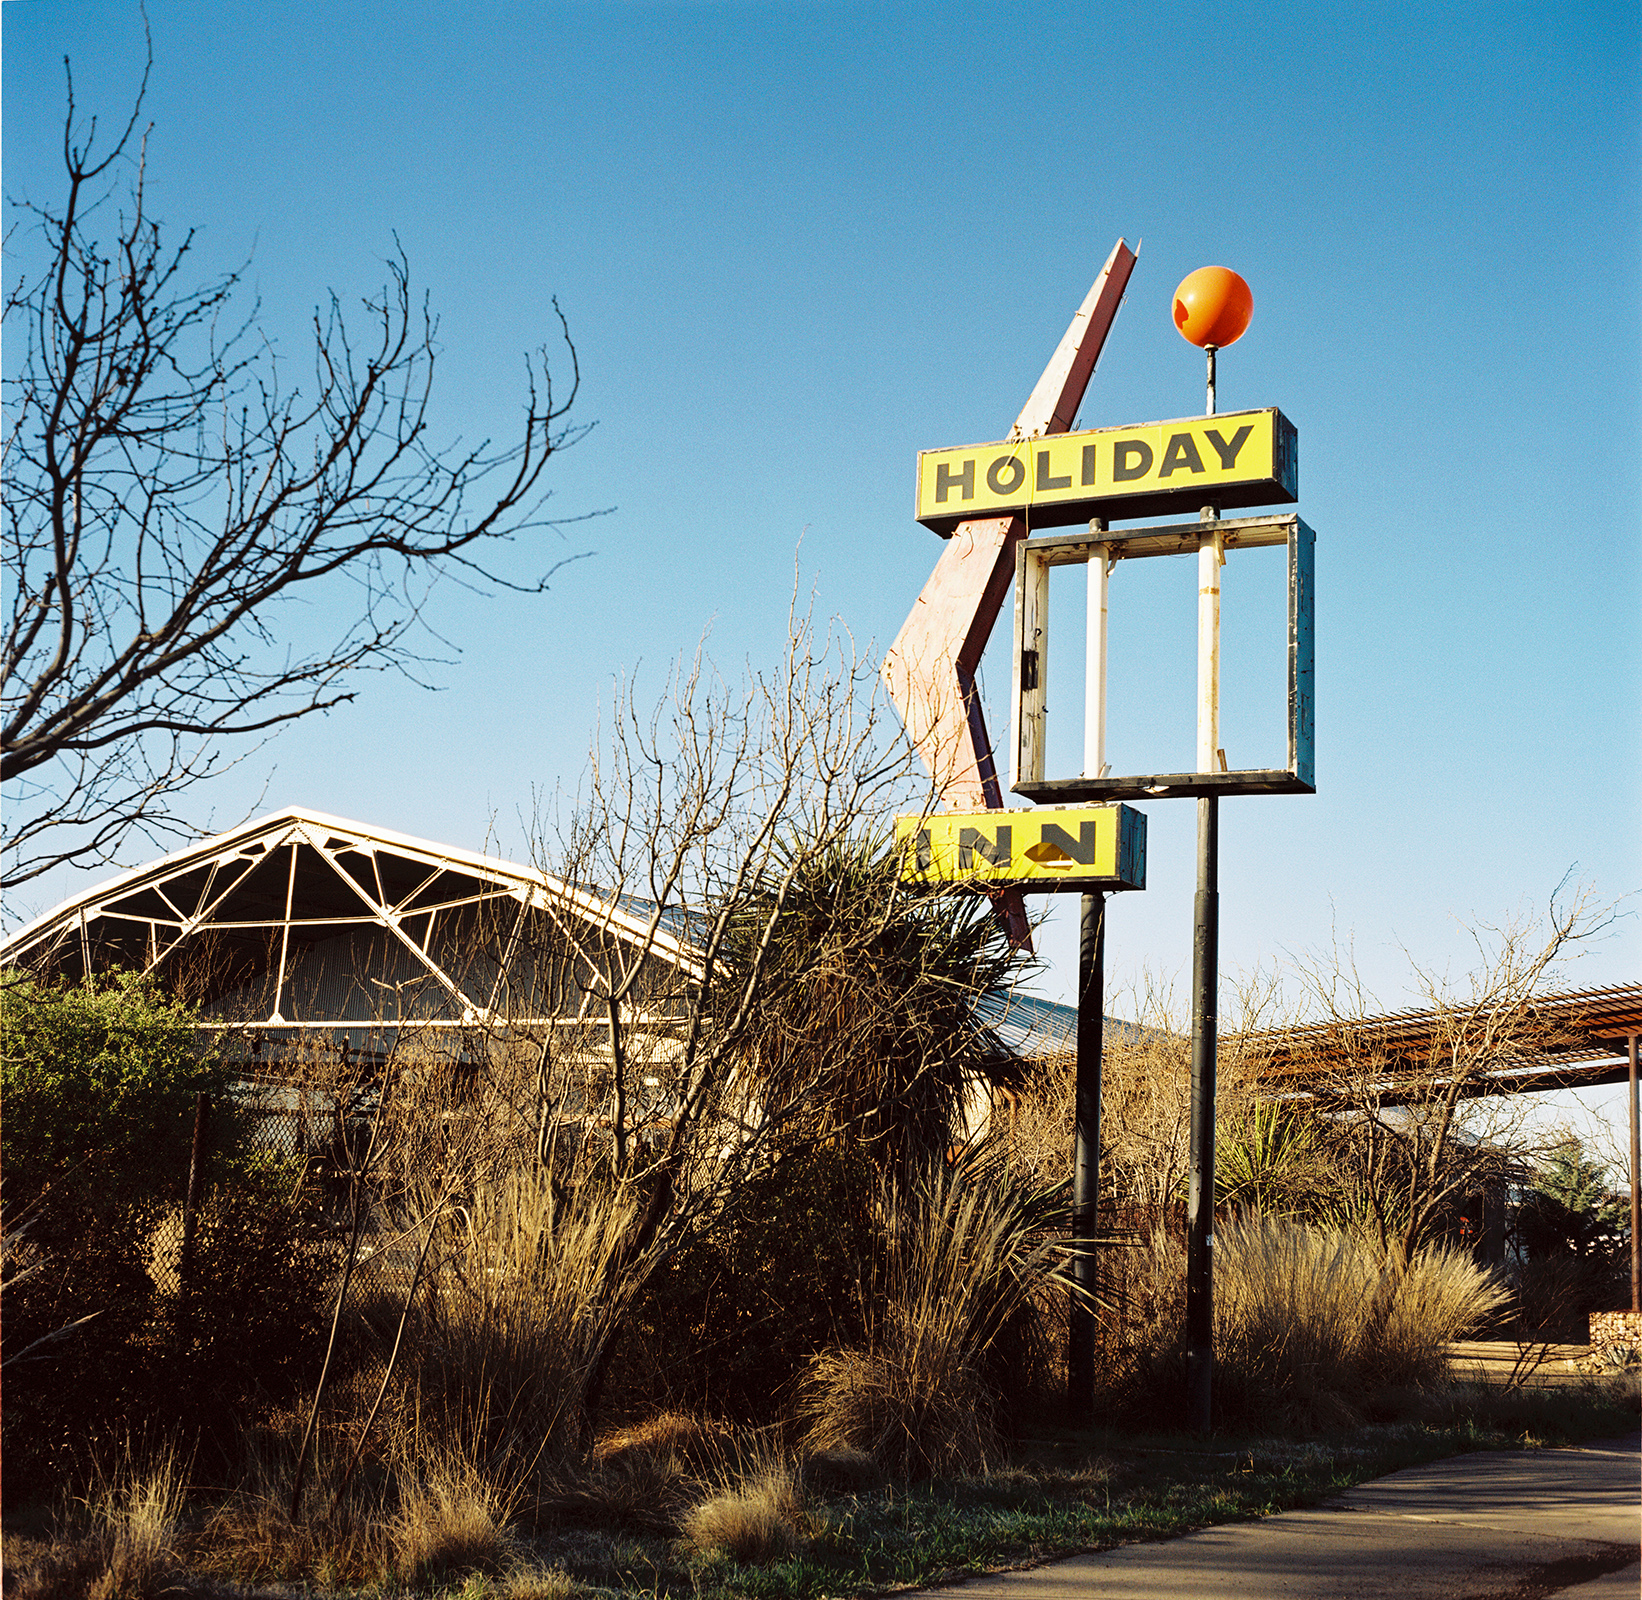 marfa_texas_film_travel_photography_33.jpg